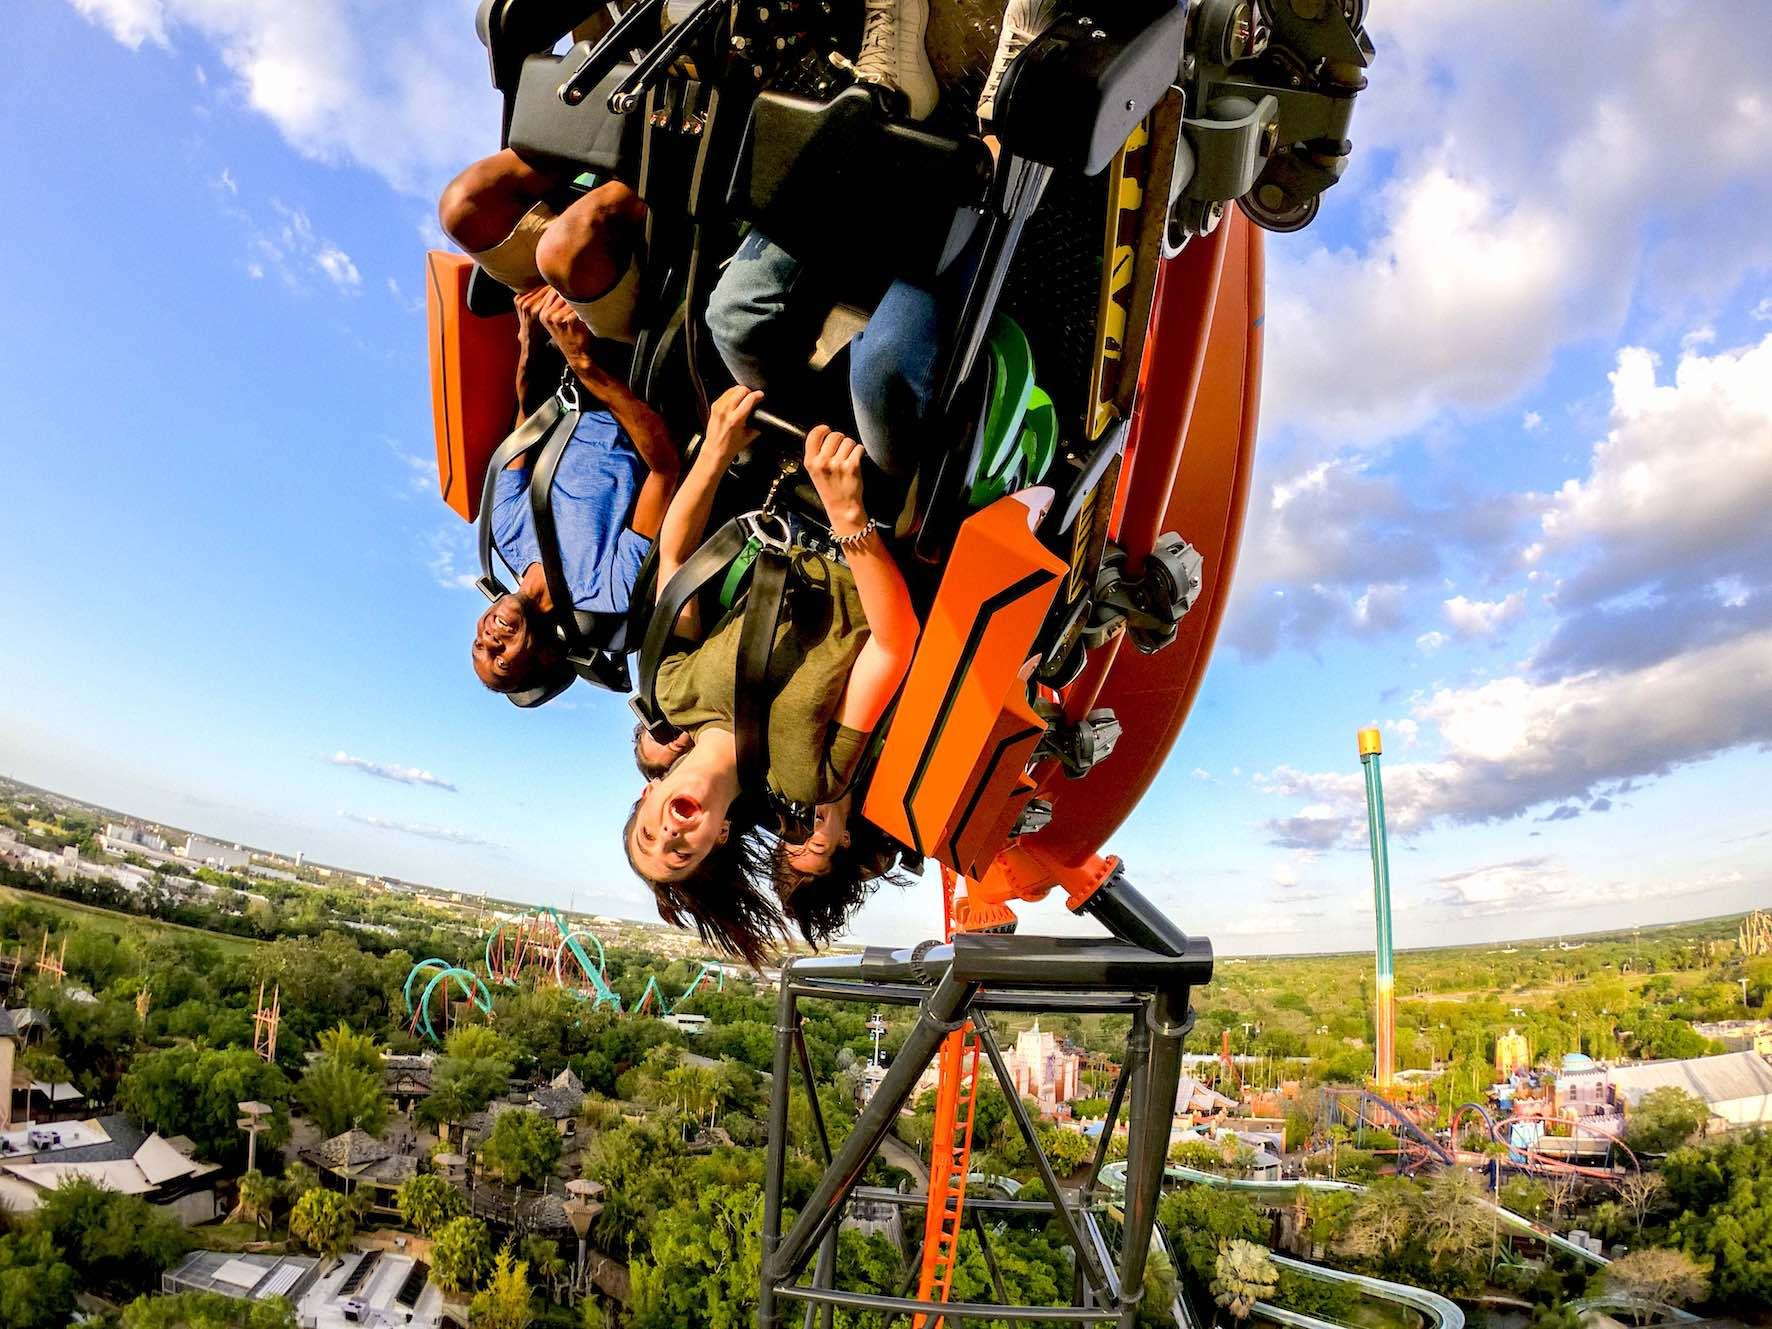 Tigris Debuts At Busch Gardens Tampa Bay Park World Online Theme Park Amusement Park And Attractions Industry News